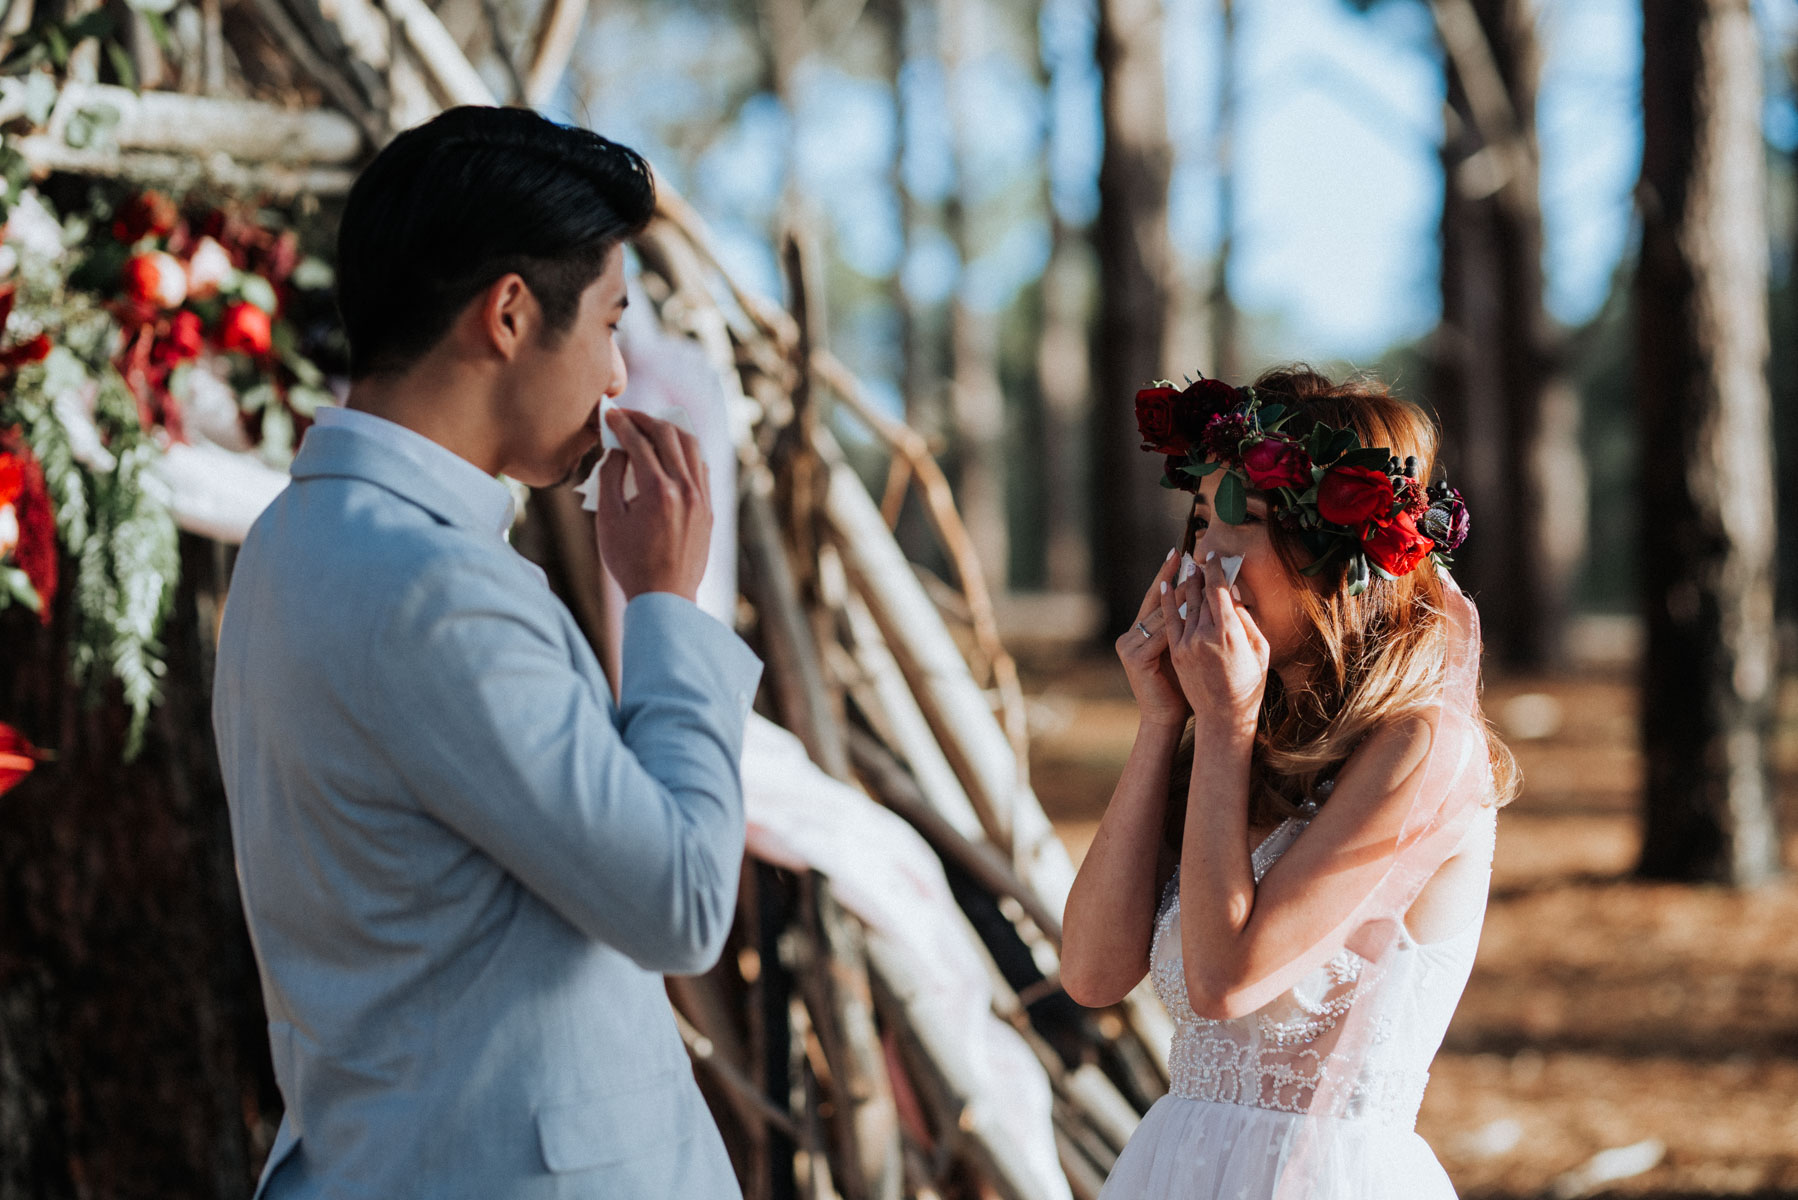 james-julene-forest-elopement-perth-14.JPG